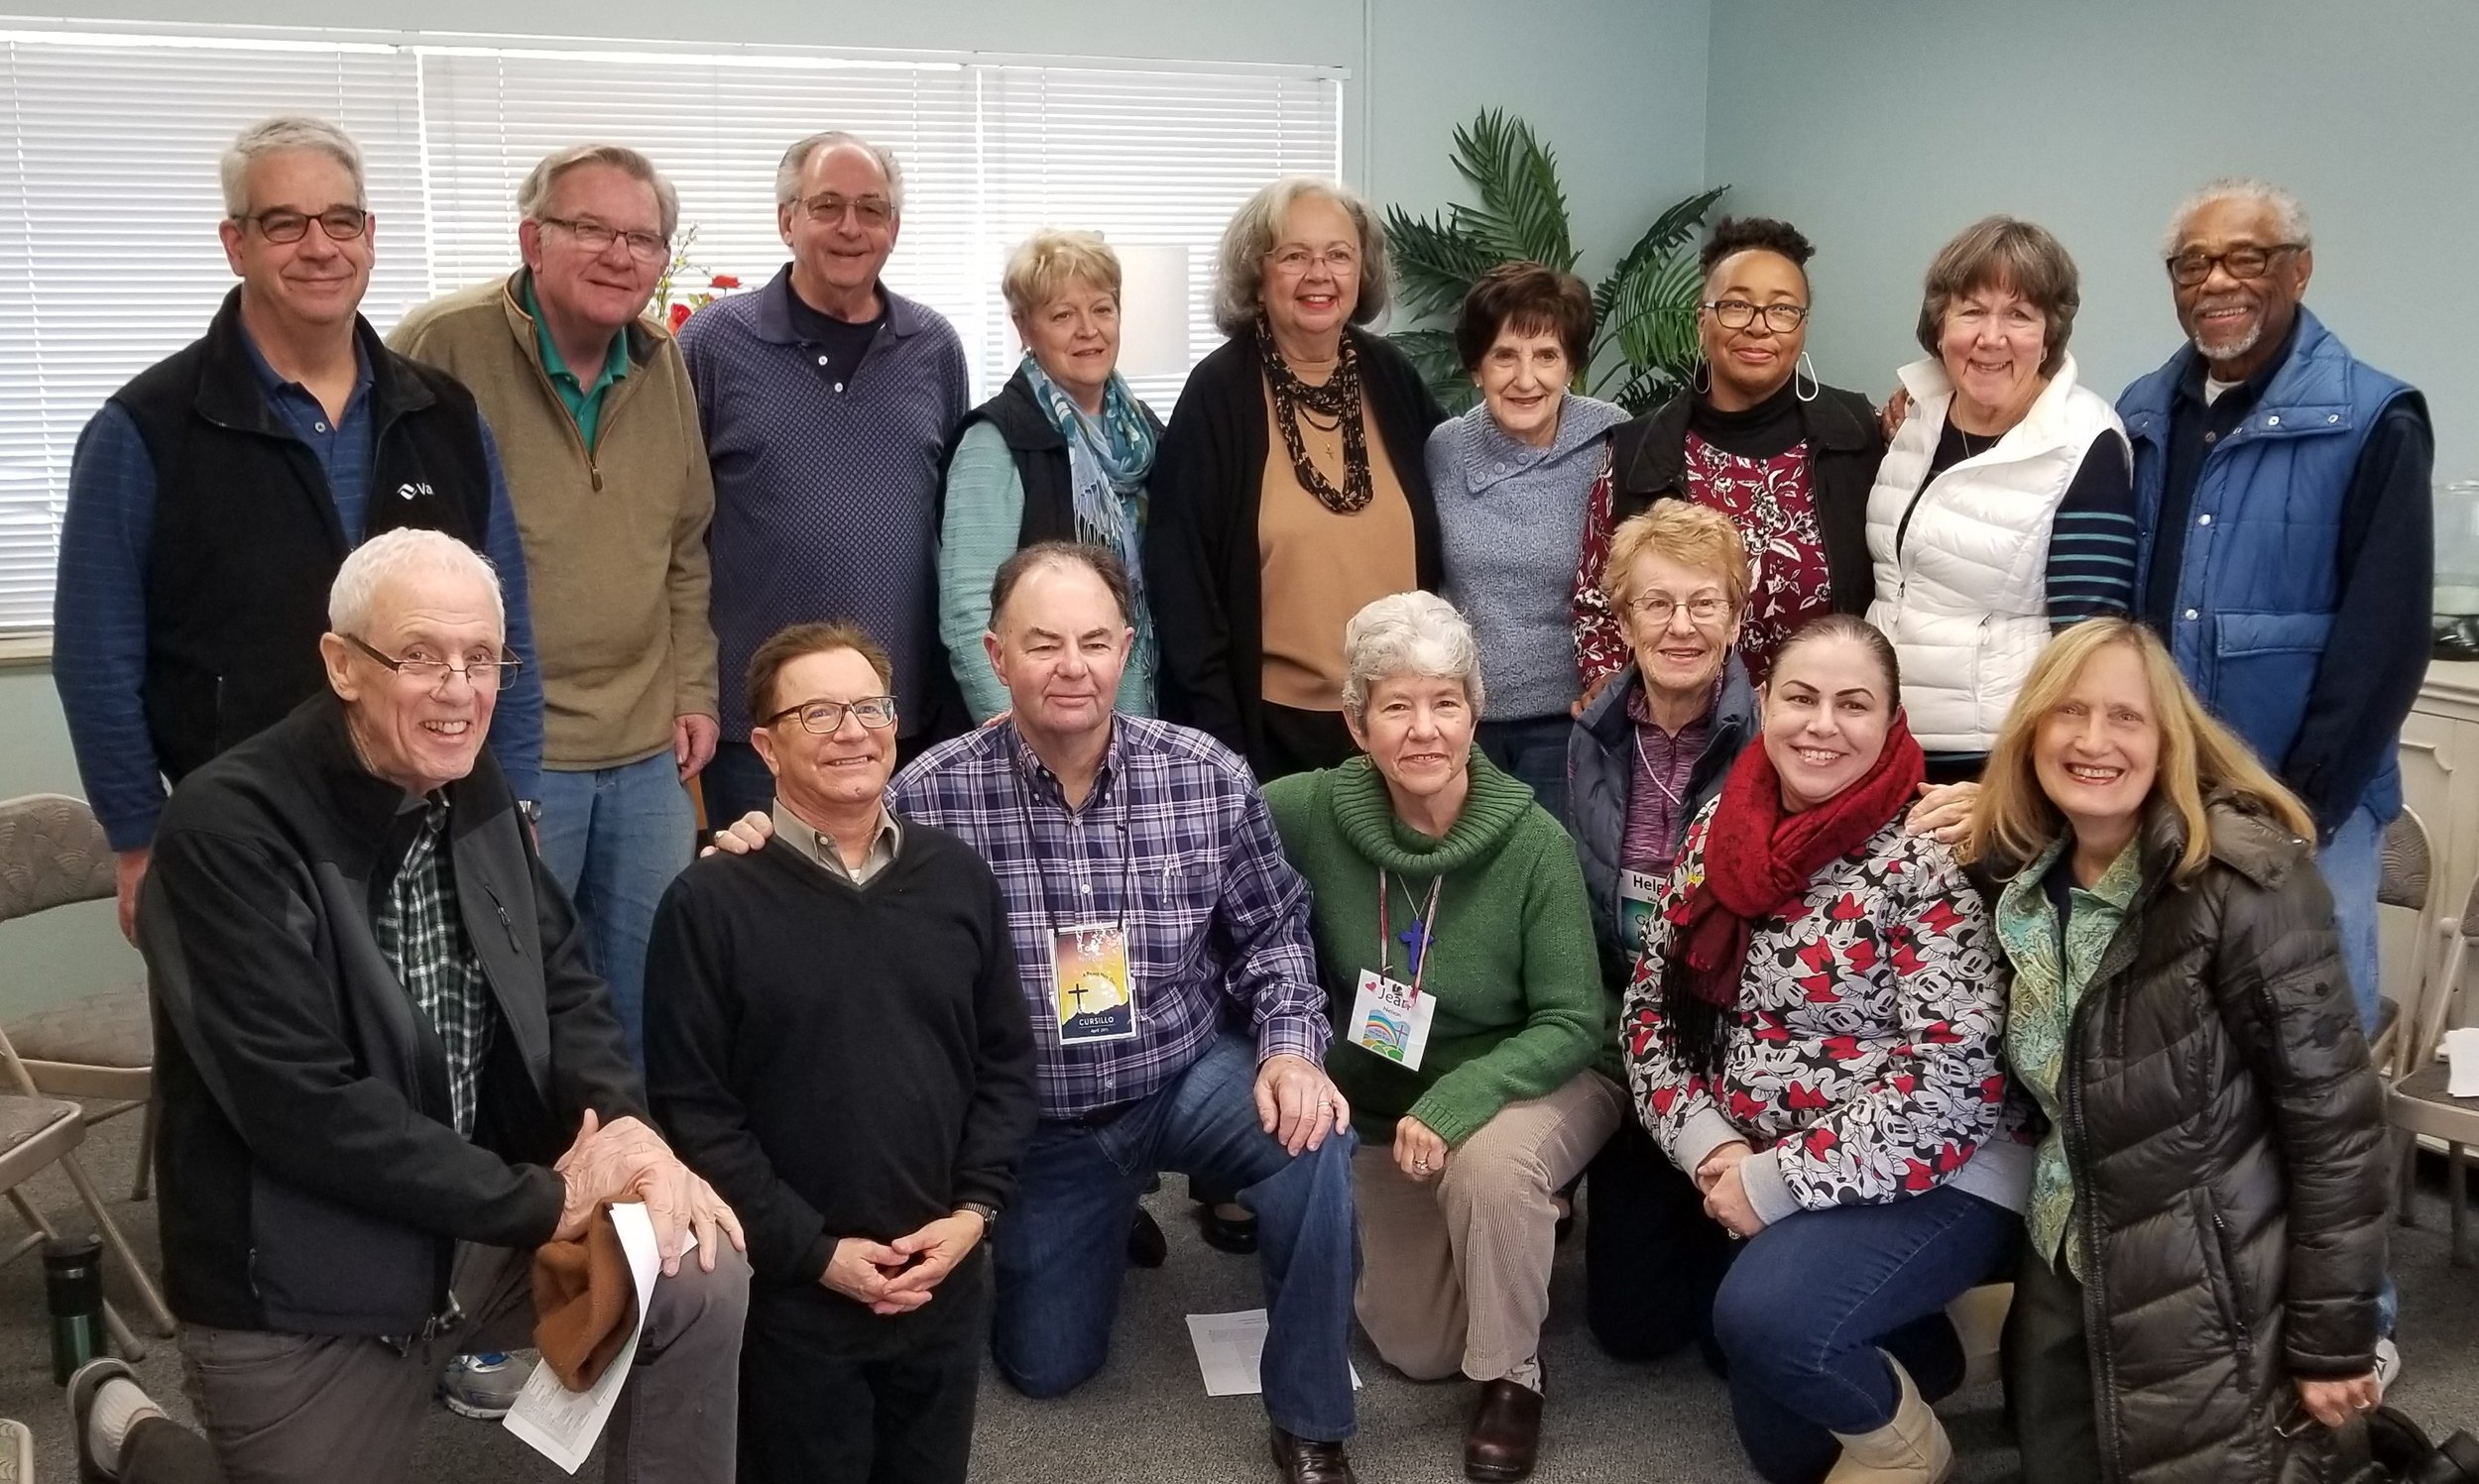 Back Row:  Tom Gannon, Ron Leach, Tom Brawley, Susan Fischer, Bettye Kray, Cathy Cunningham, Fleta Matthews, Peggy Pugh, Jim Matthew.   Front Row:  Richard Olive, Mike Ardito, Tom Nelson, Jean Nelson, Helga May, Mary Bartunek, Anna Villalon